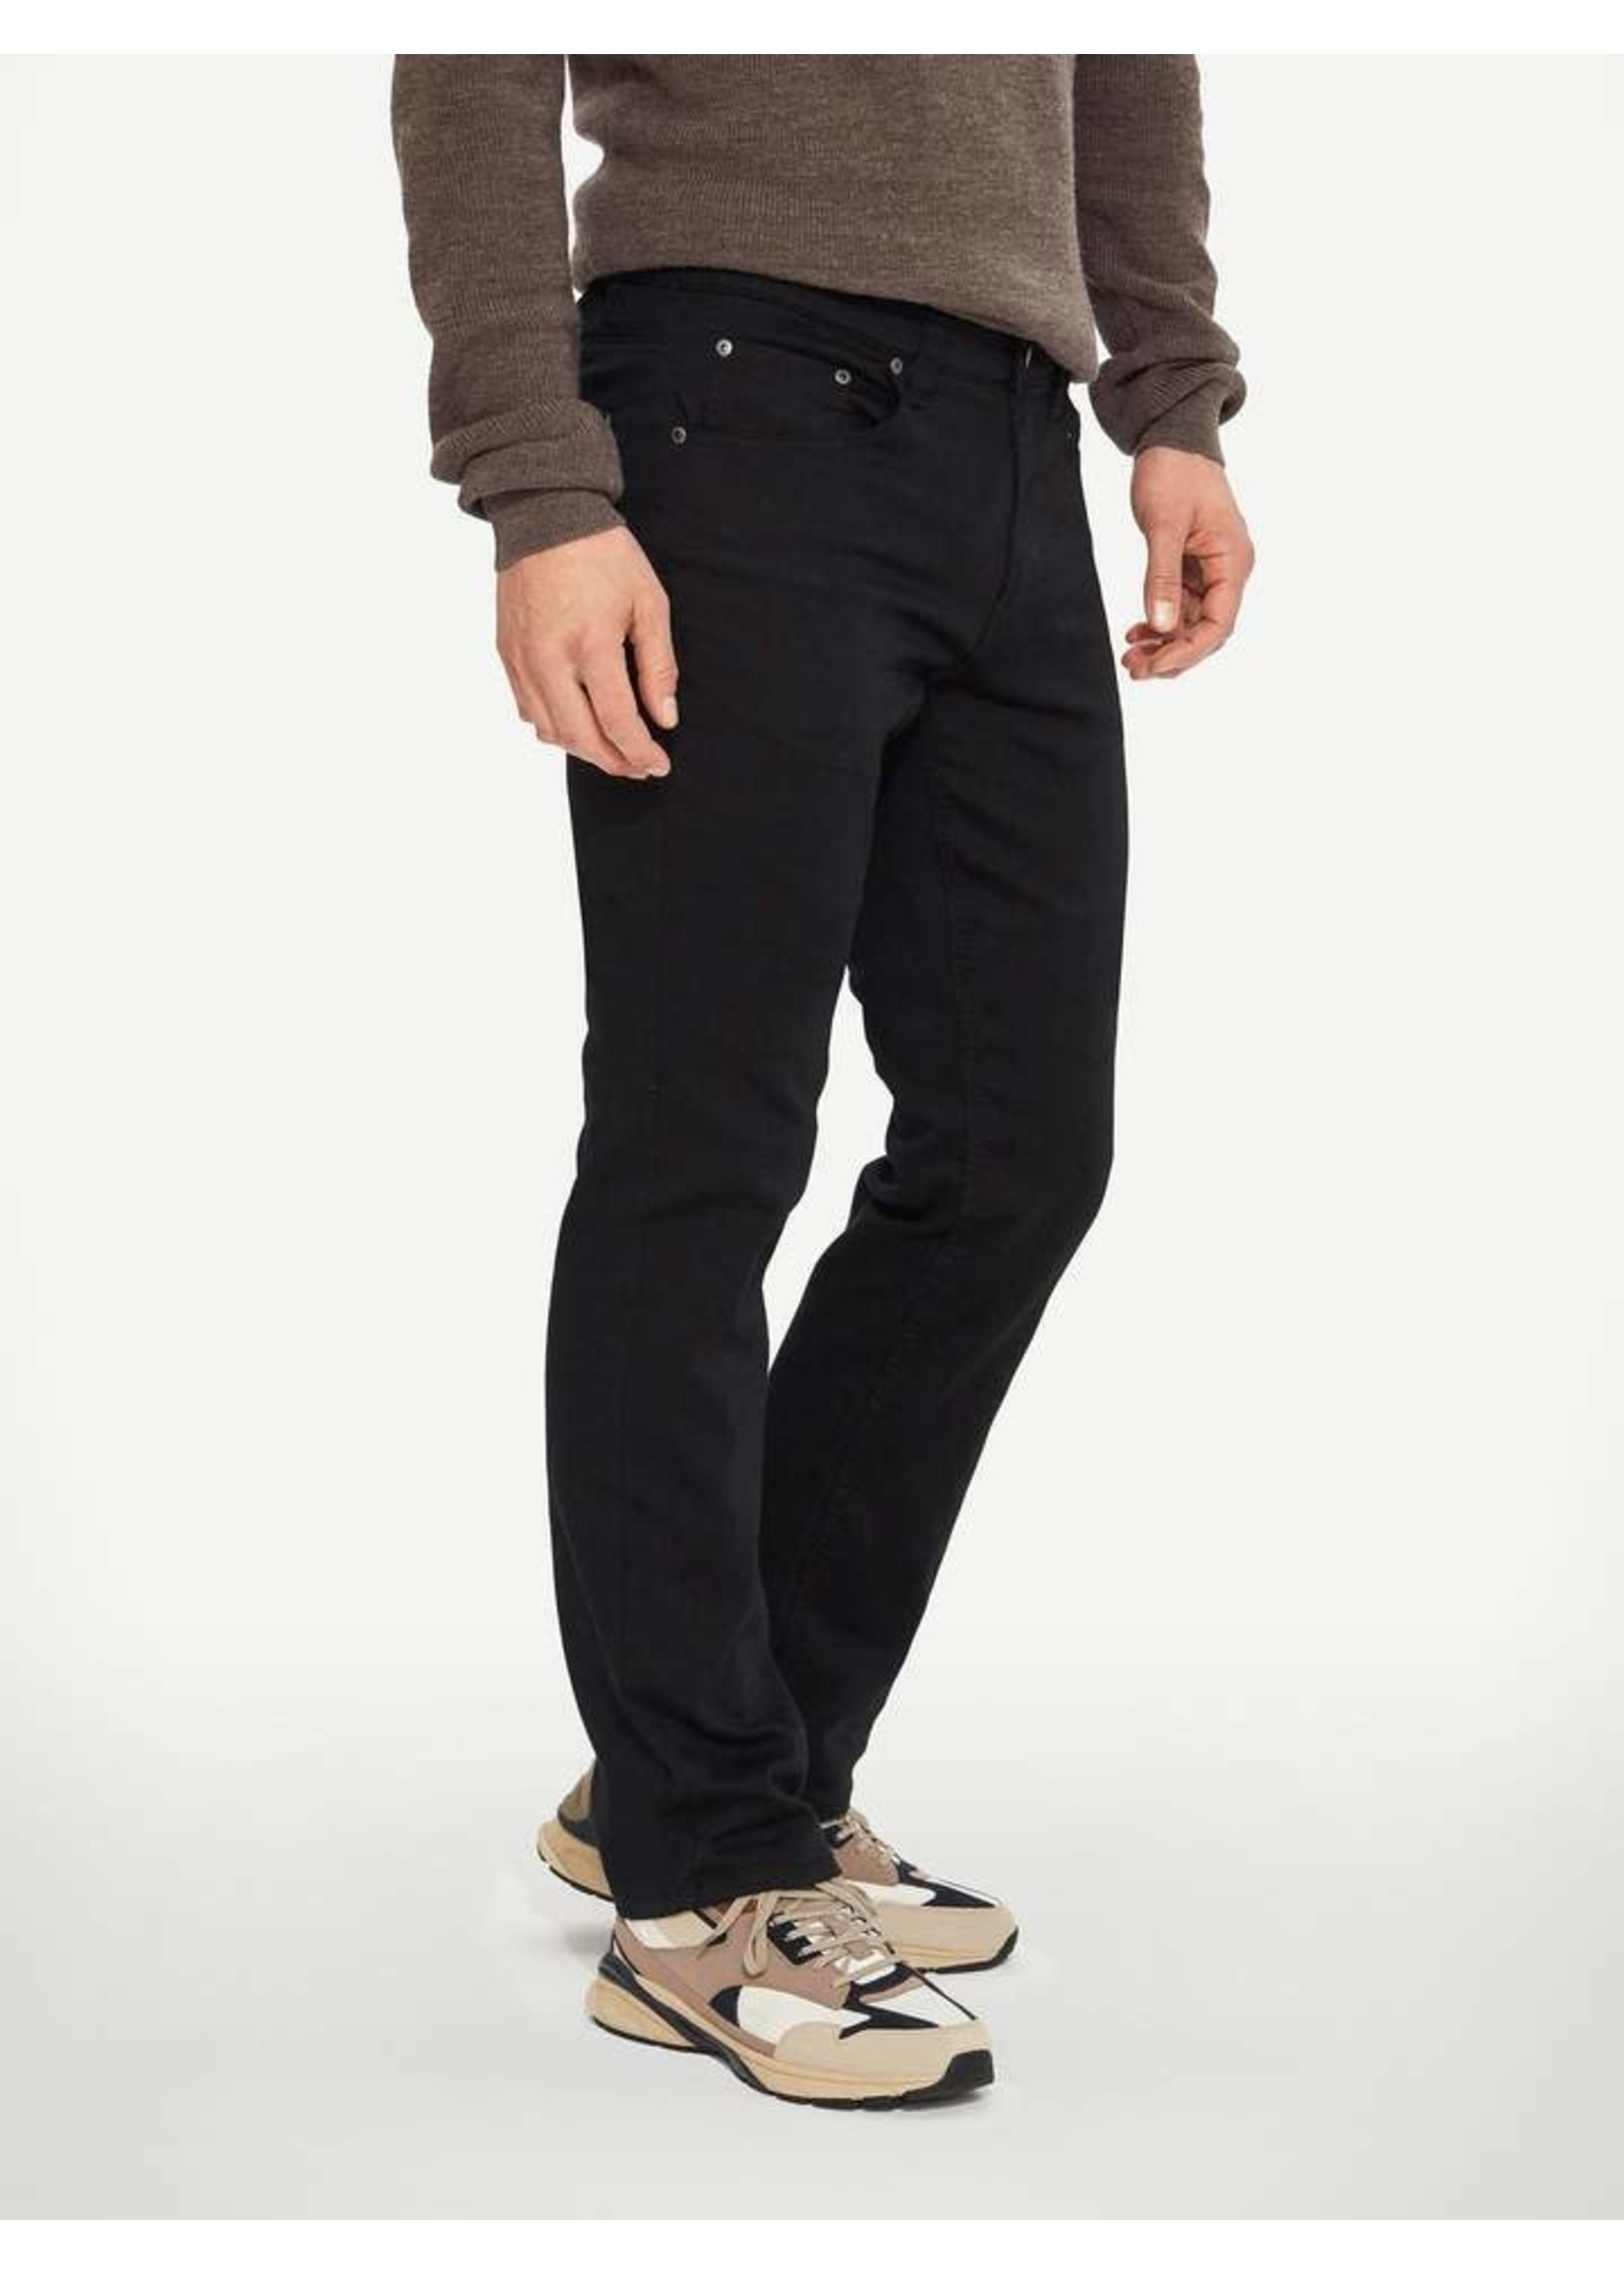 """Lois Jeans Canada The """"Brad Slim 6240-99"""" by Lois Jeans"""